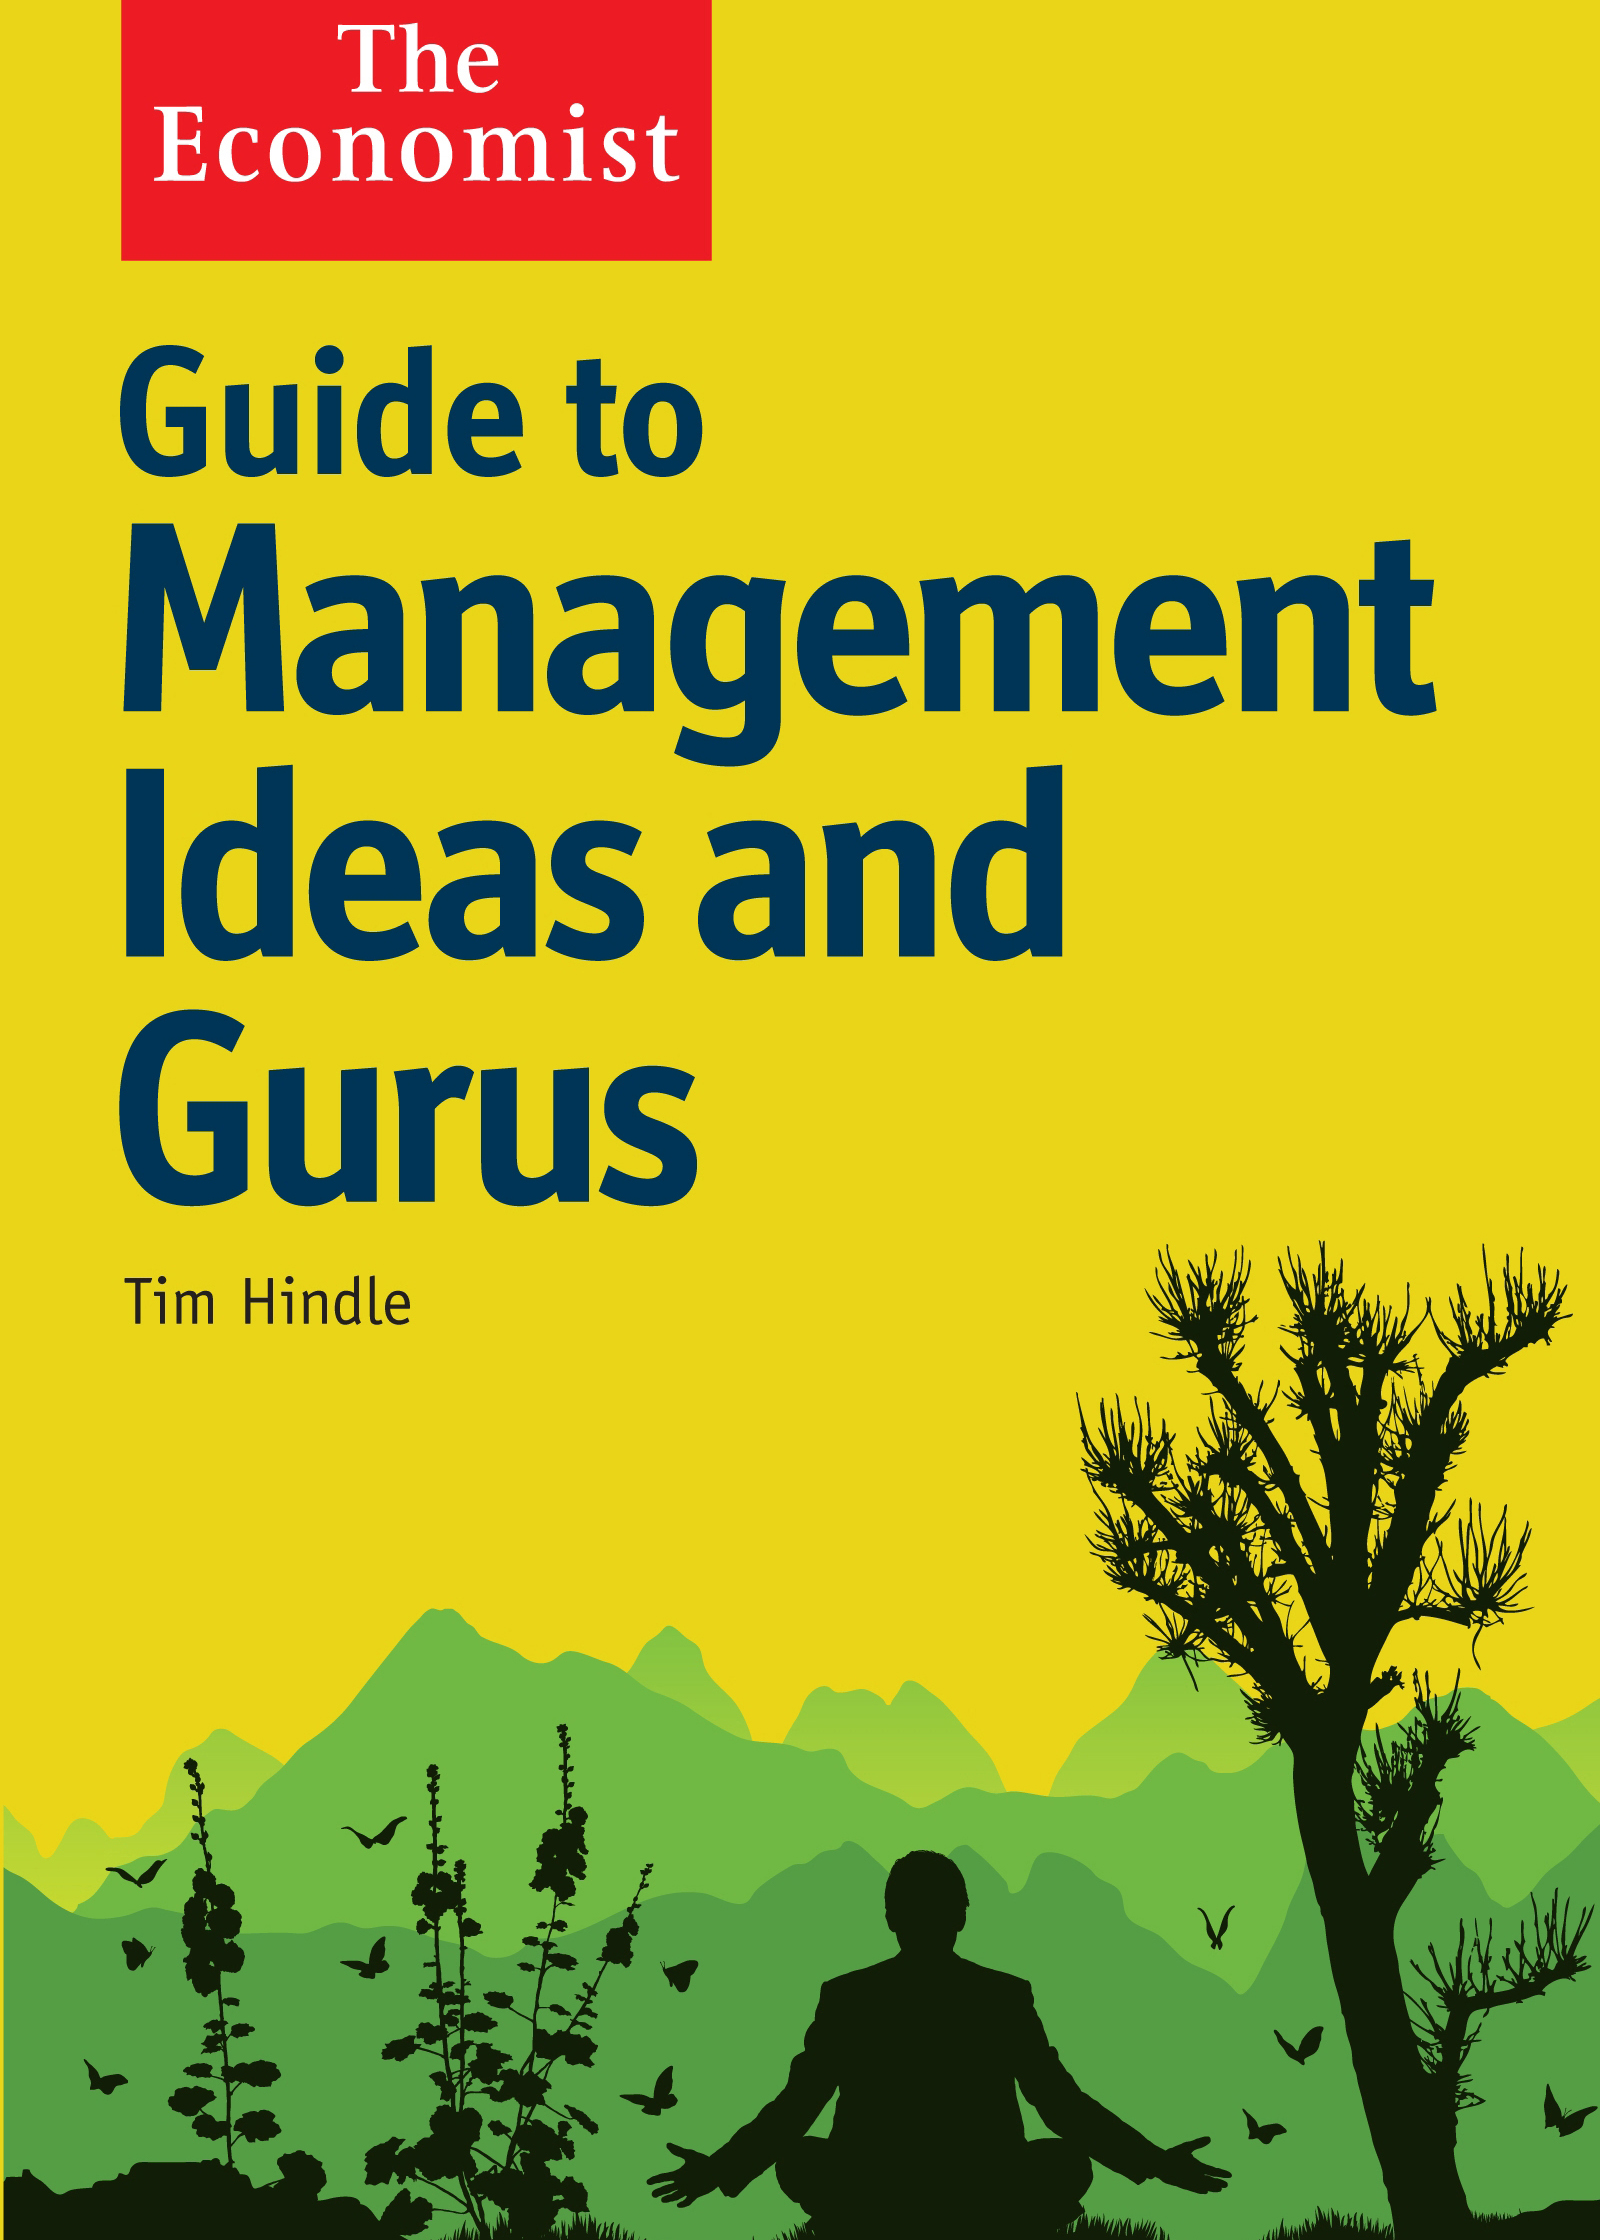 The Economist Guide to Management Ideas and Gurus.jpg